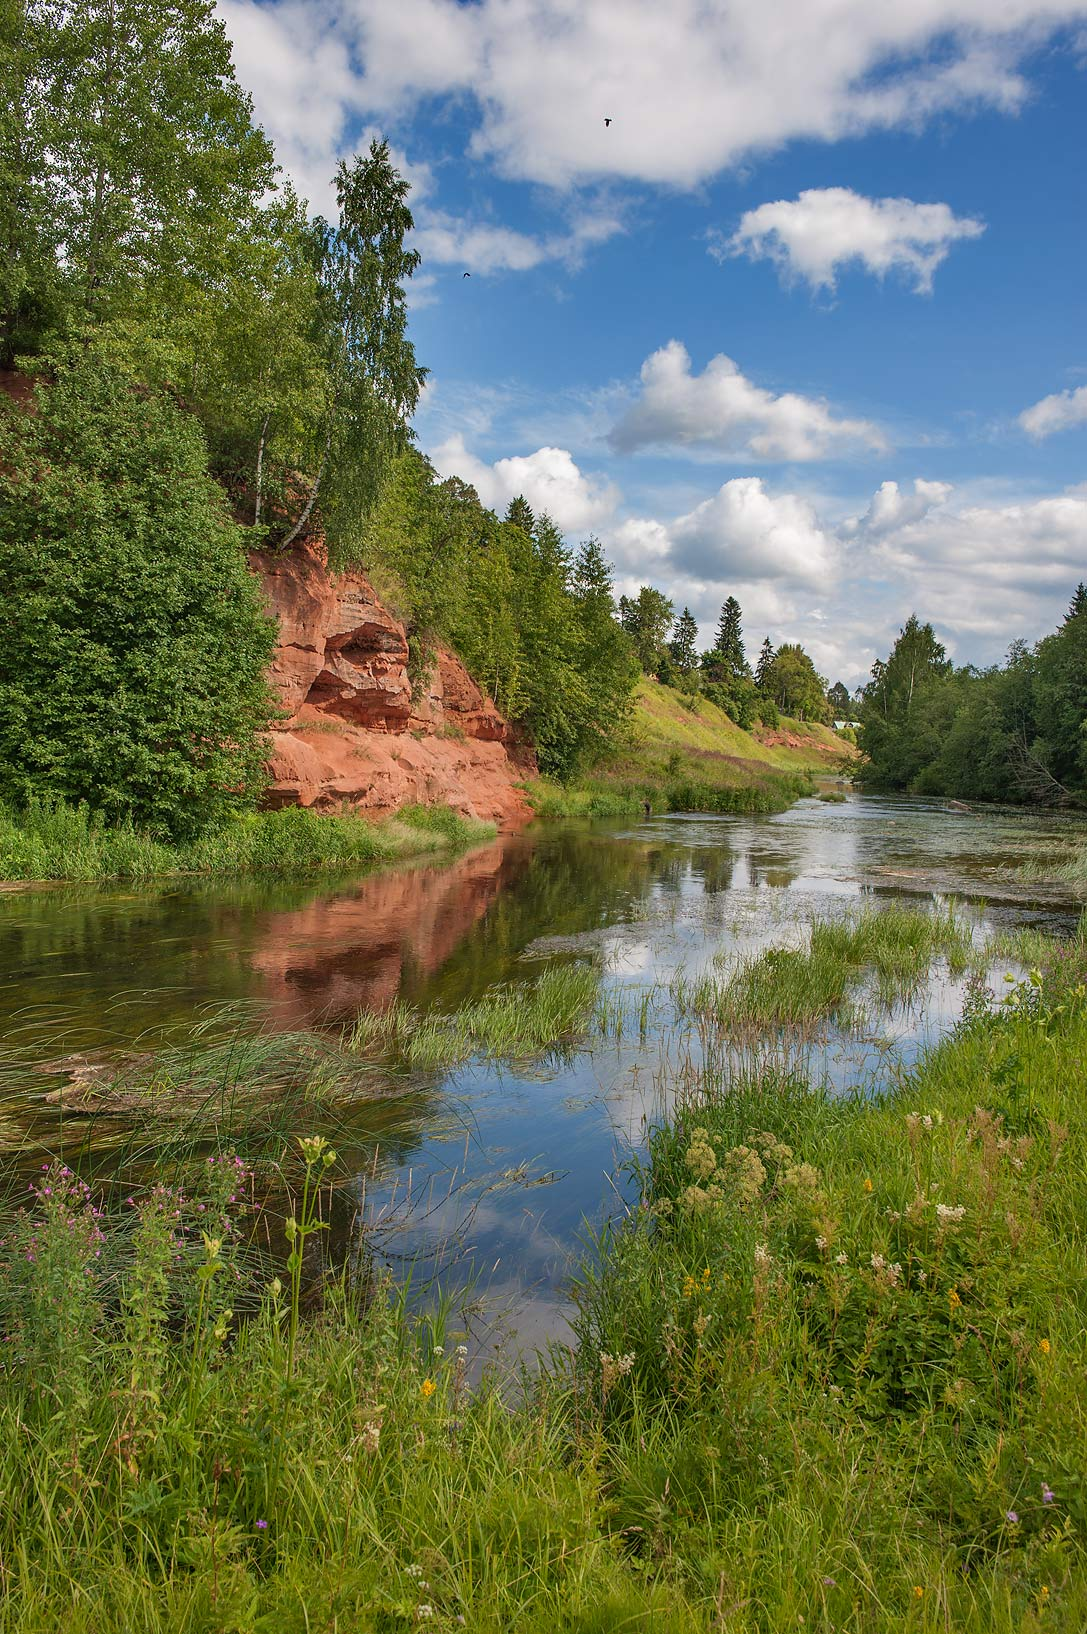 View of red sandstone cliffs of Oredezh River. Siverskaya south from St.Petersburg, Russia